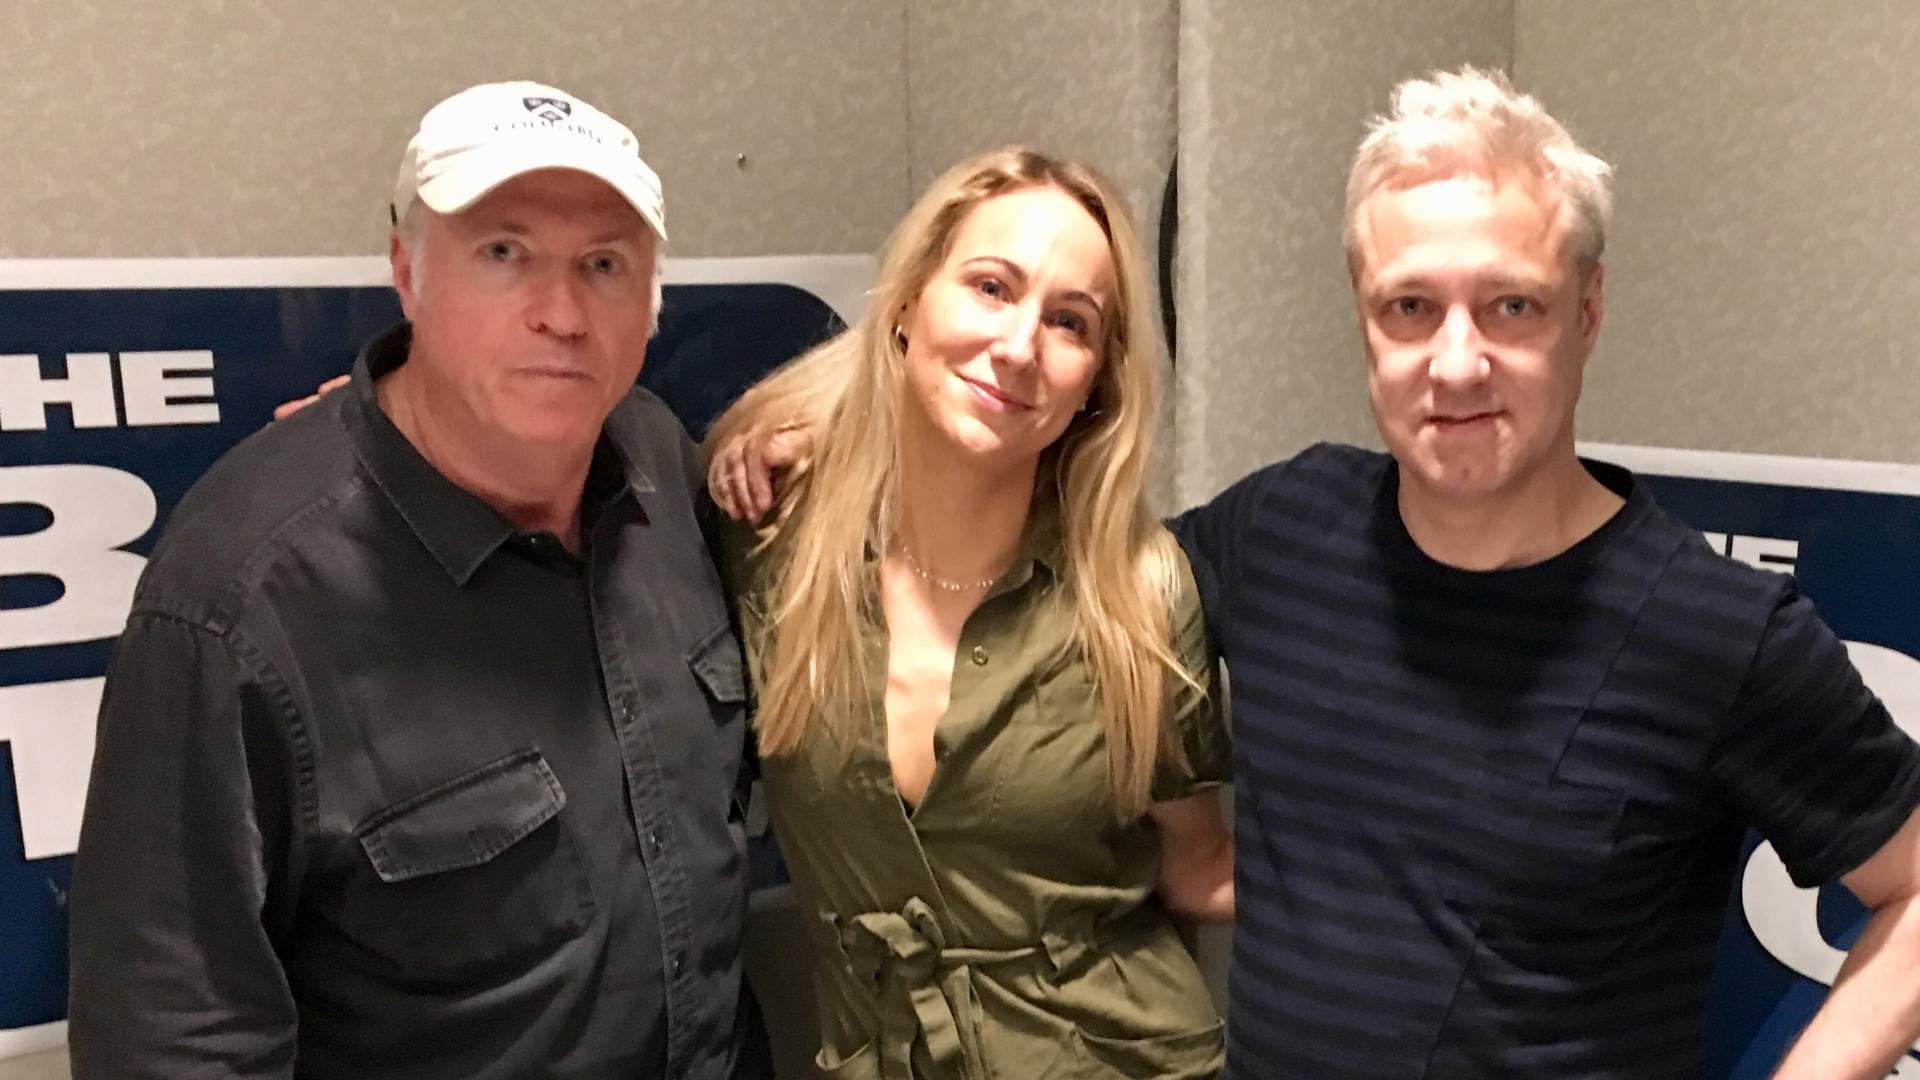 B&T Tonight for 7-2-2019: Nikki Glaser Joins Tom in NYC